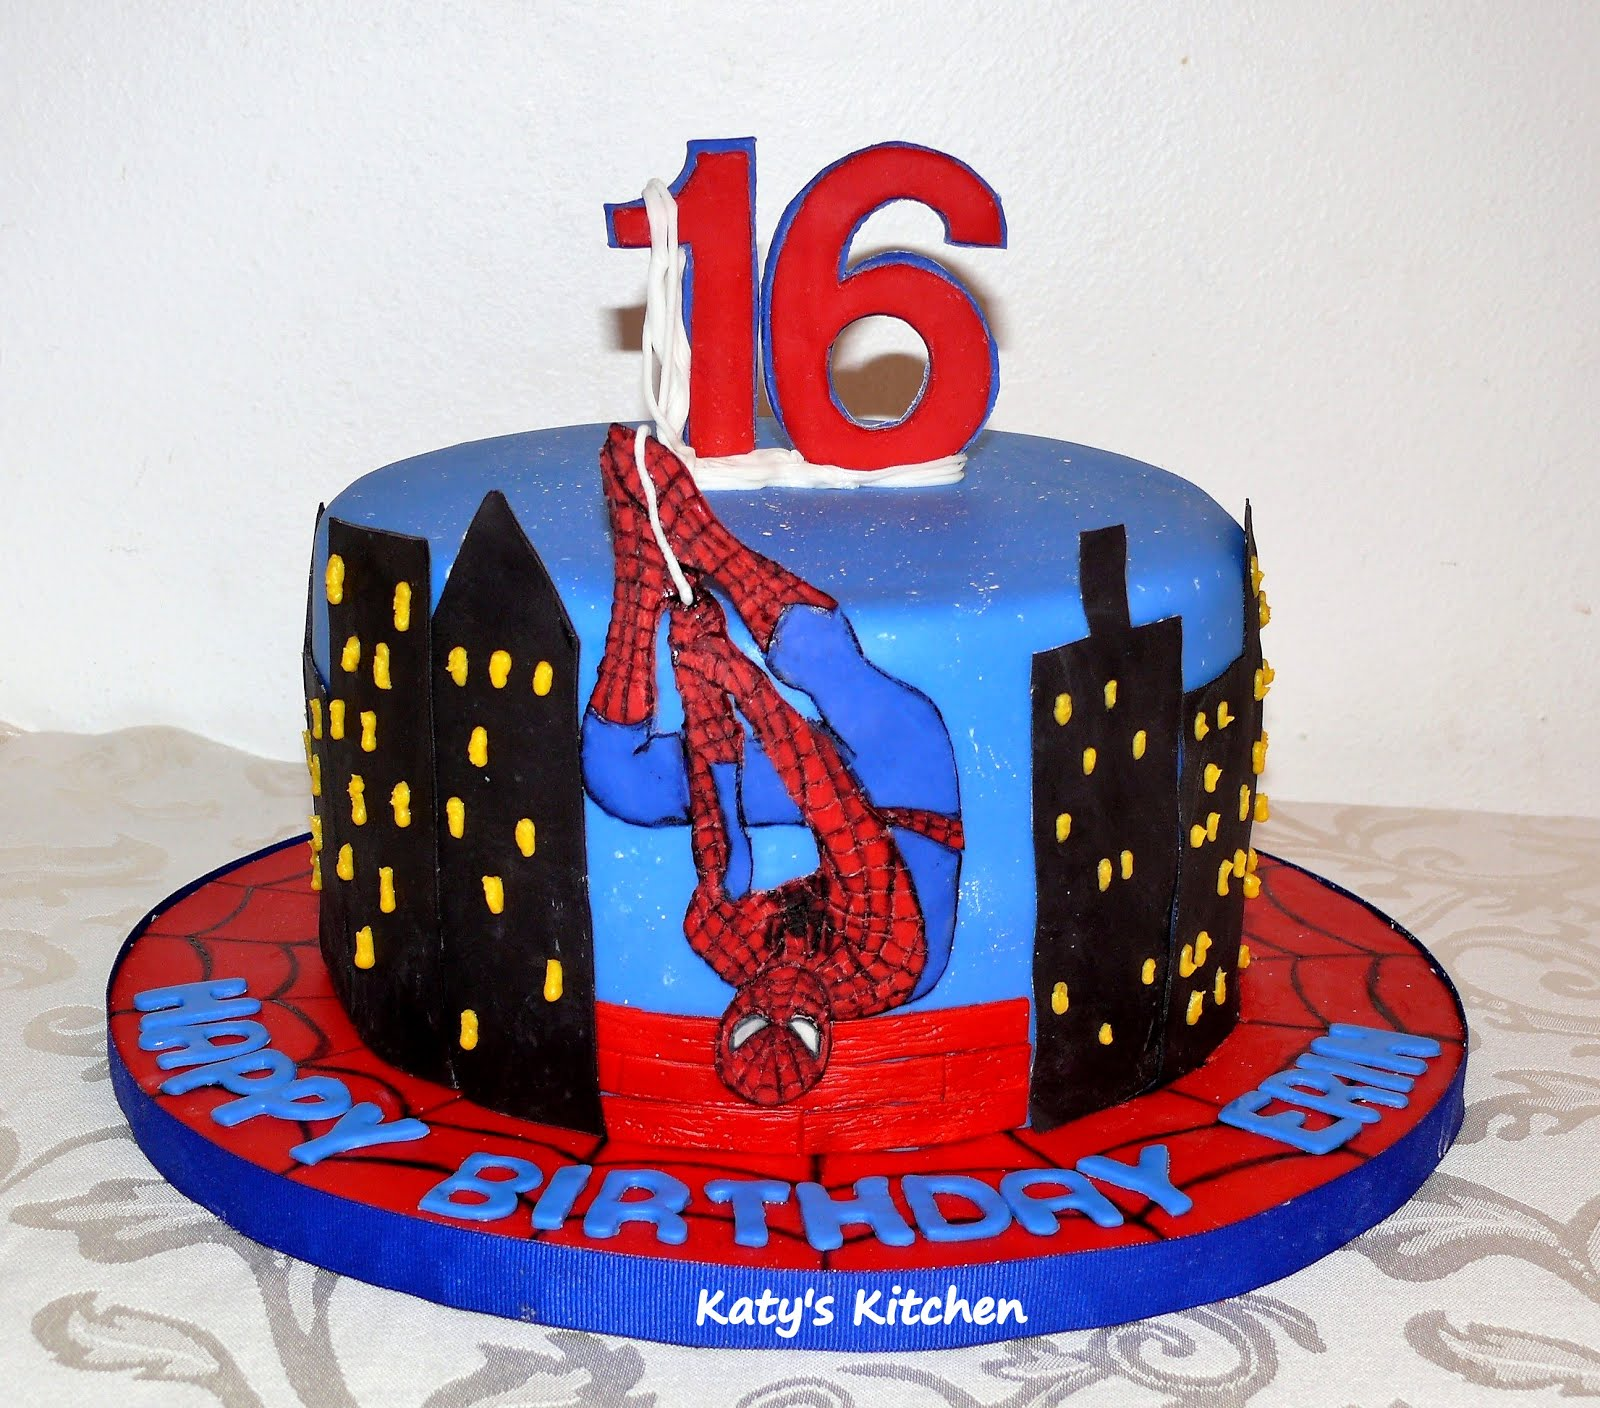 Outstanding Katys Kitchen Spider Man Birthday Cake For A 16 Year Old Funny Birthday Cards Online Alyptdamsfinfo